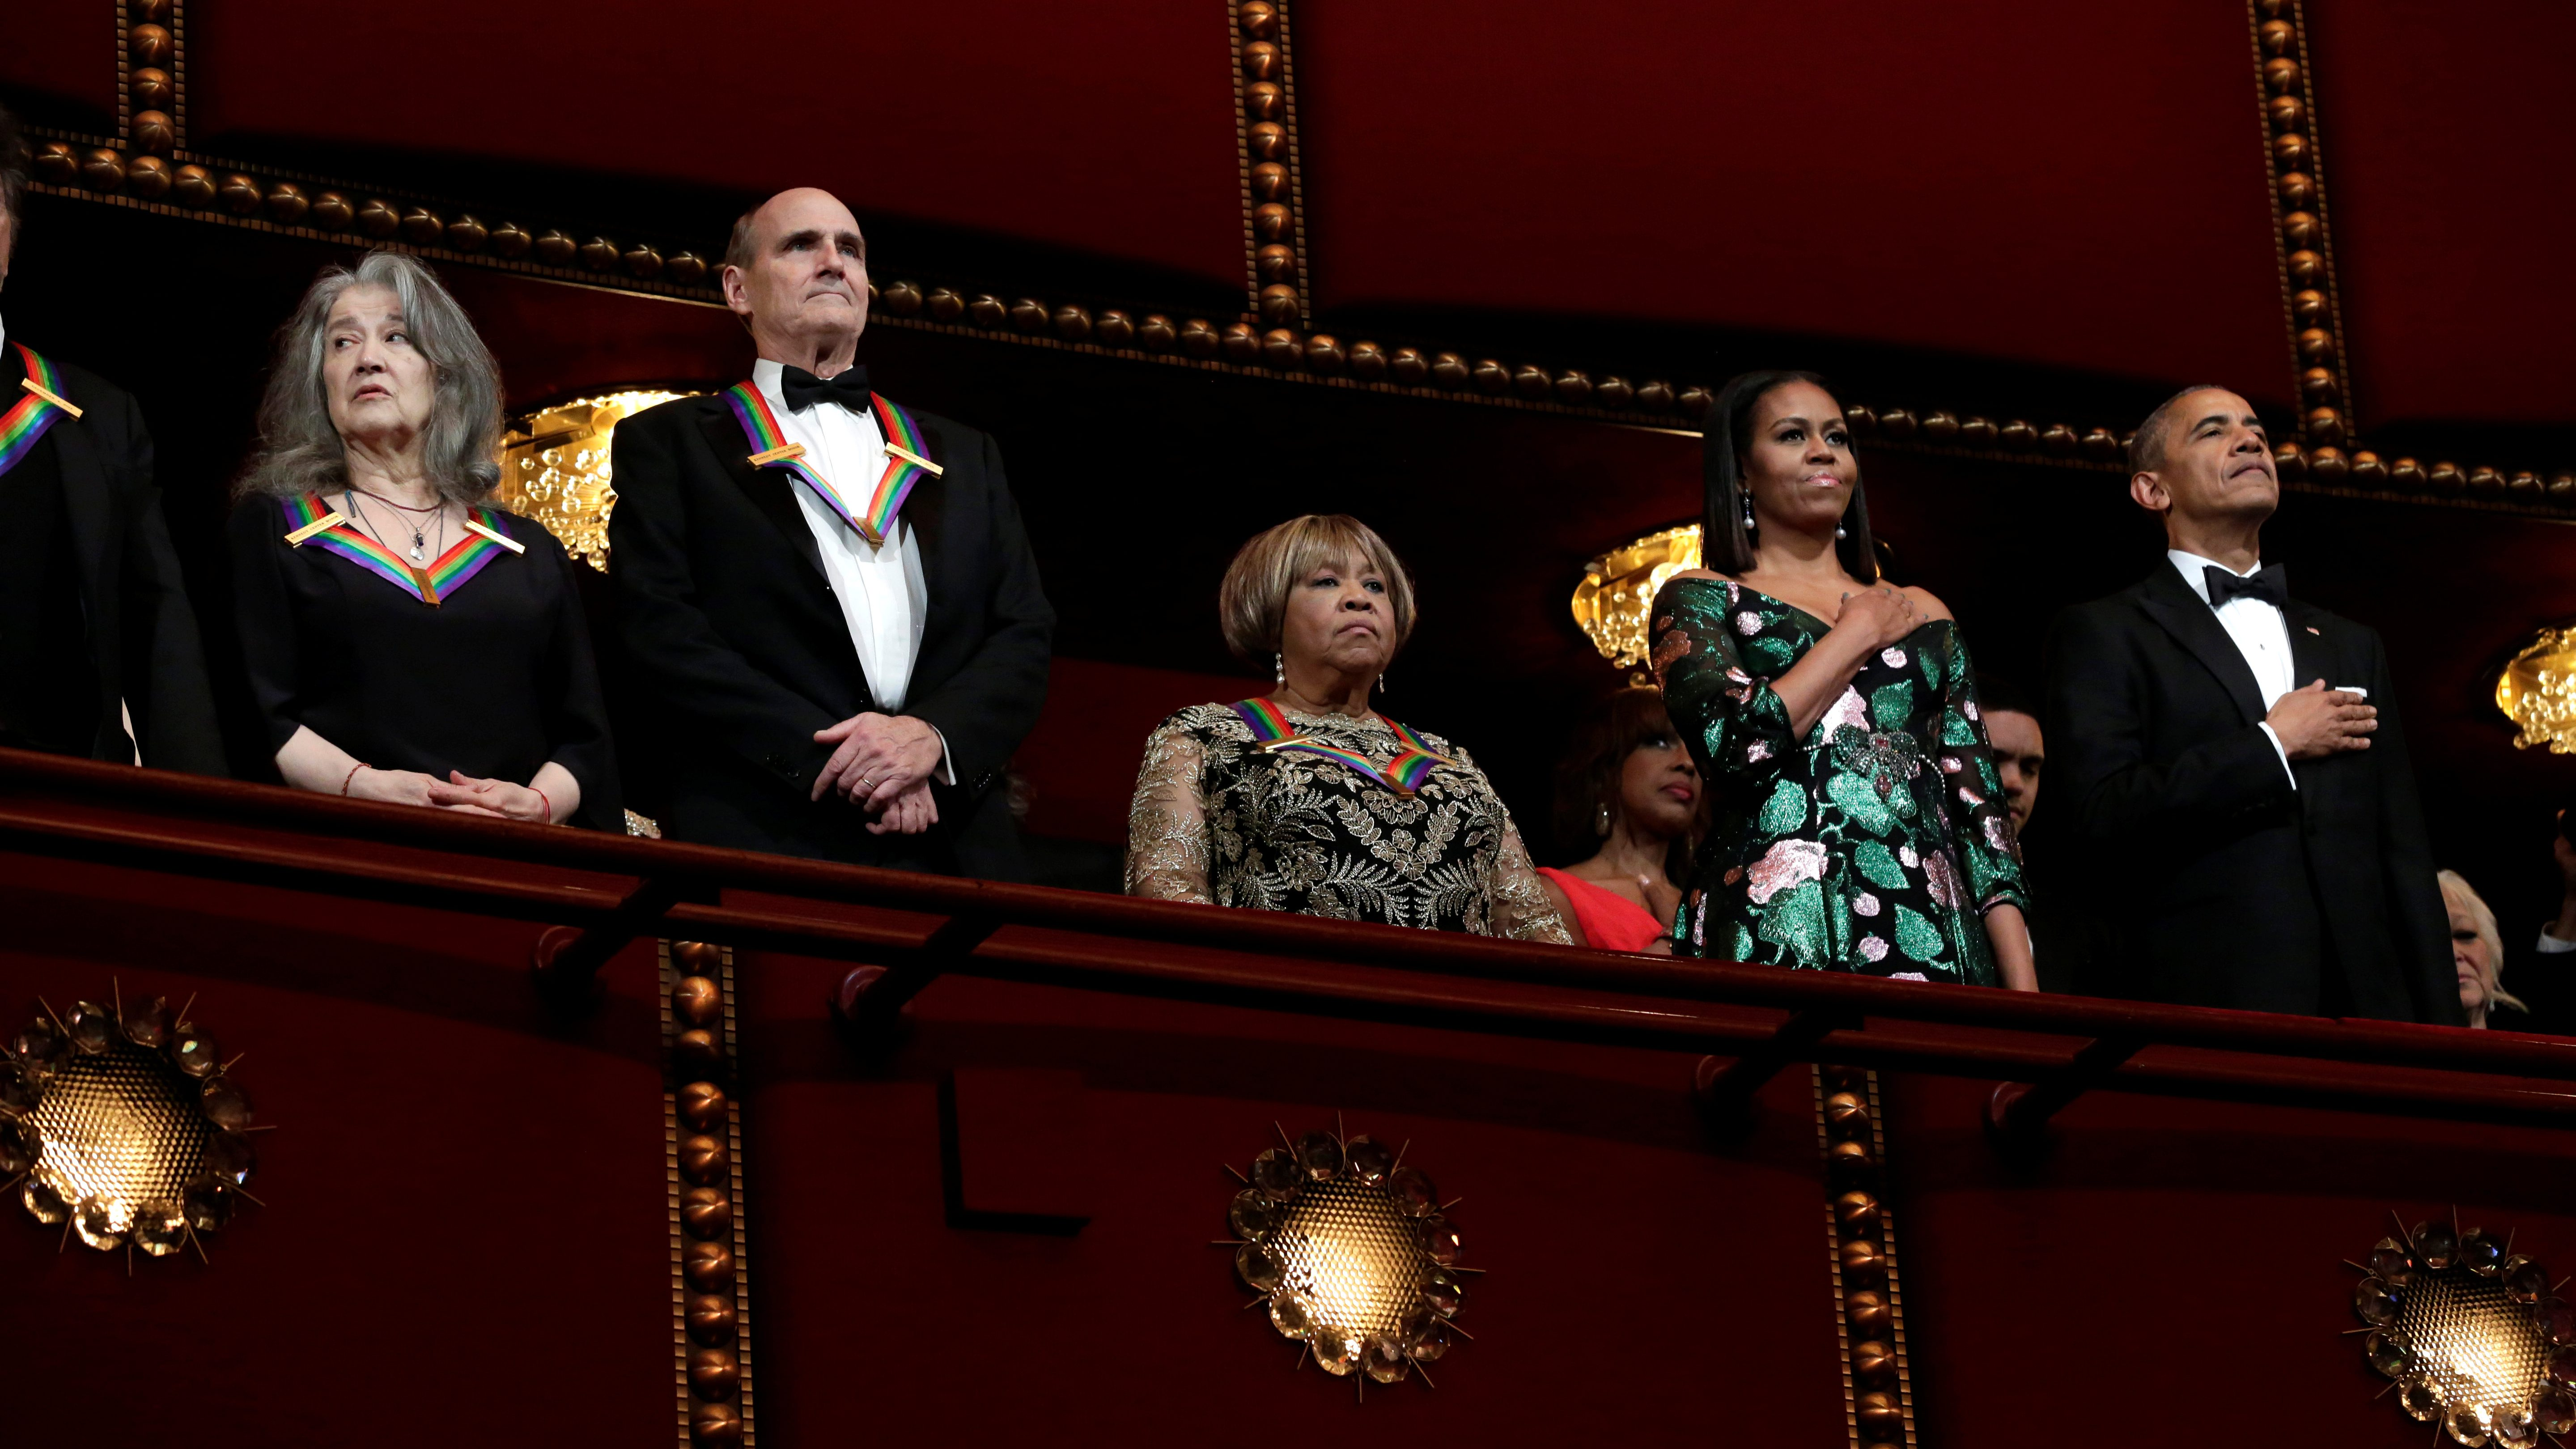 President Barack Obama and first lady Michelle Obama attend the Kennedy Center Honors